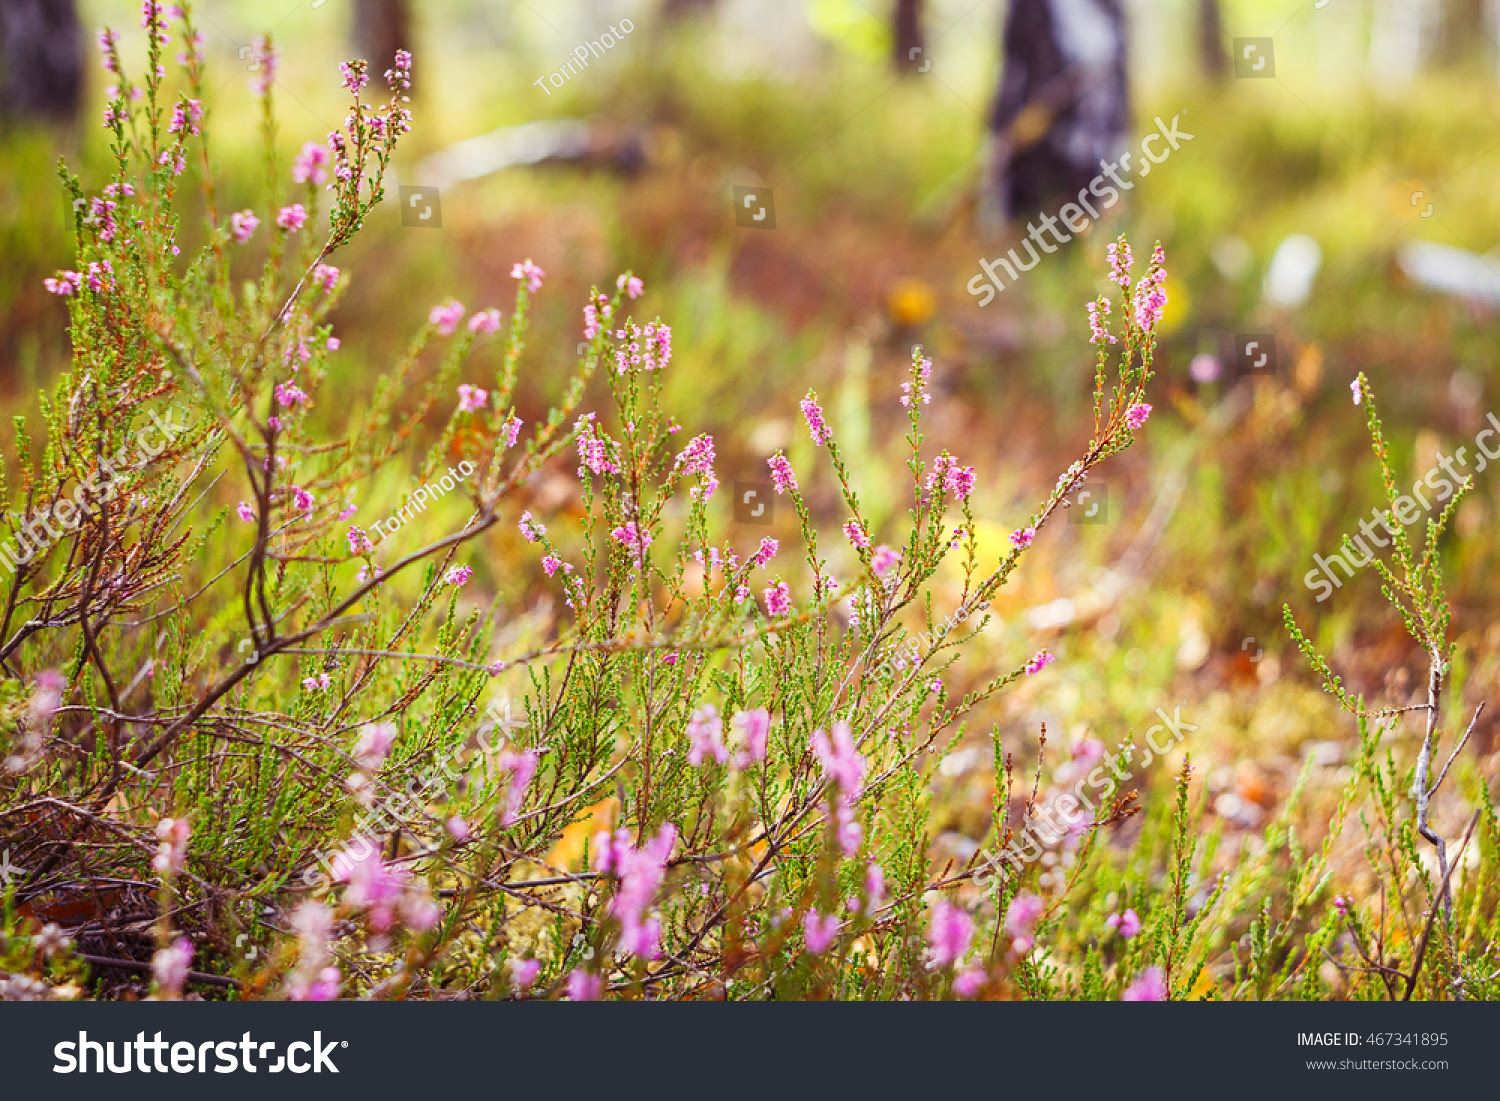 Closeup of blooming heather in the autumn forest